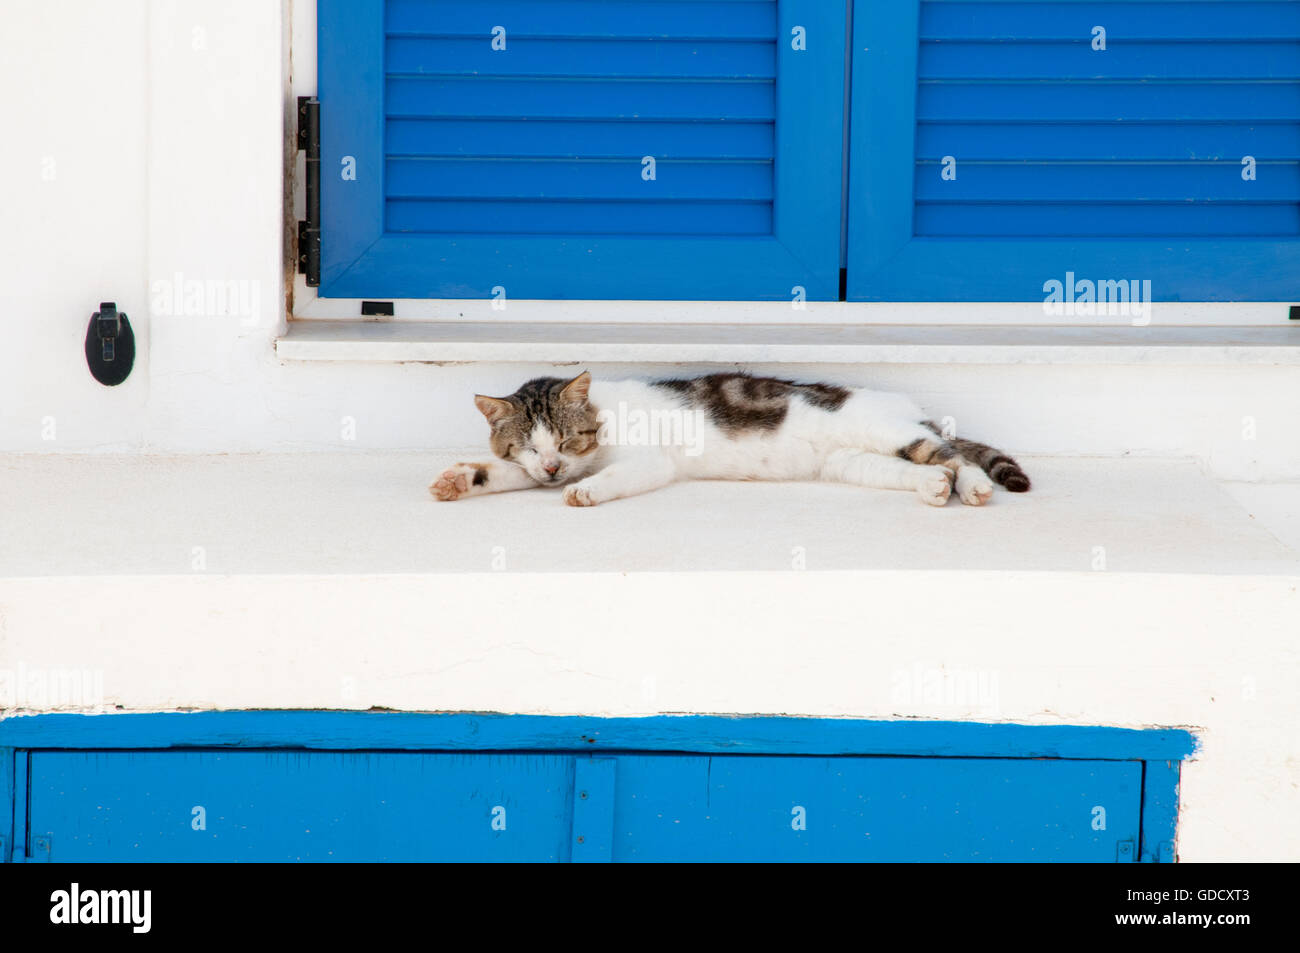 Cute stray cat on island of Thirasia, Greece - Stock Image